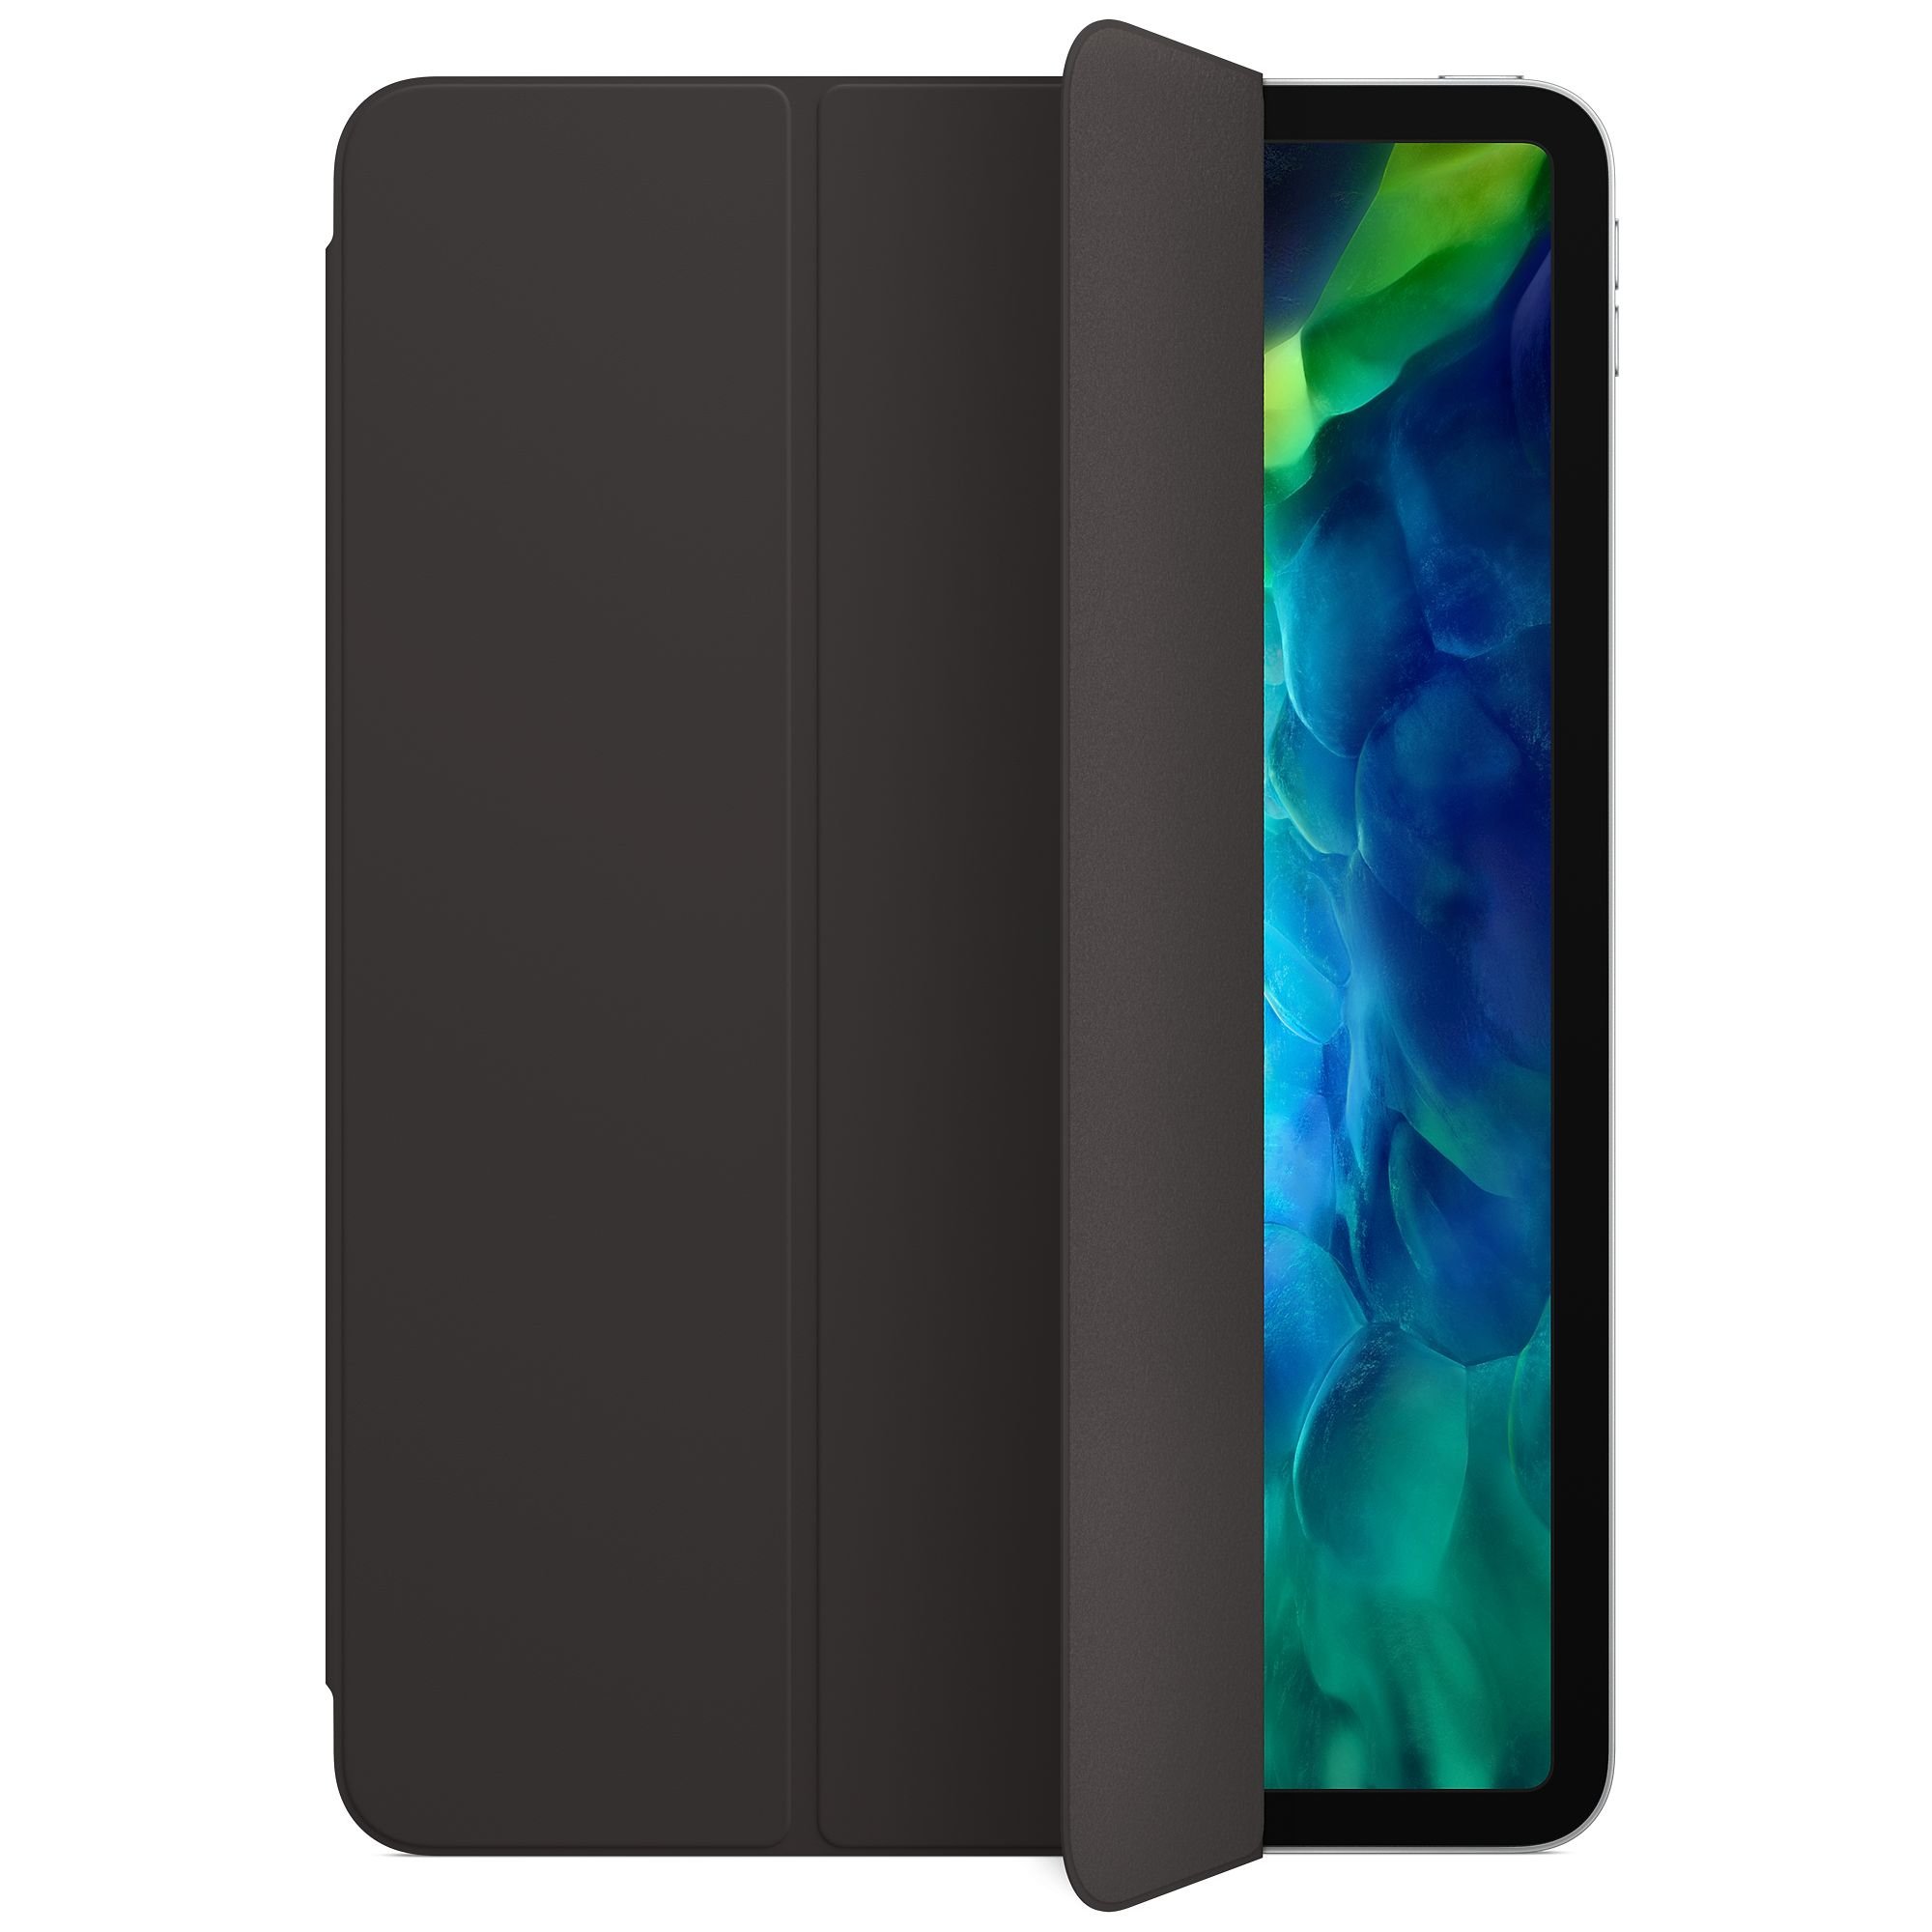 Smart Folio for iPad Pro